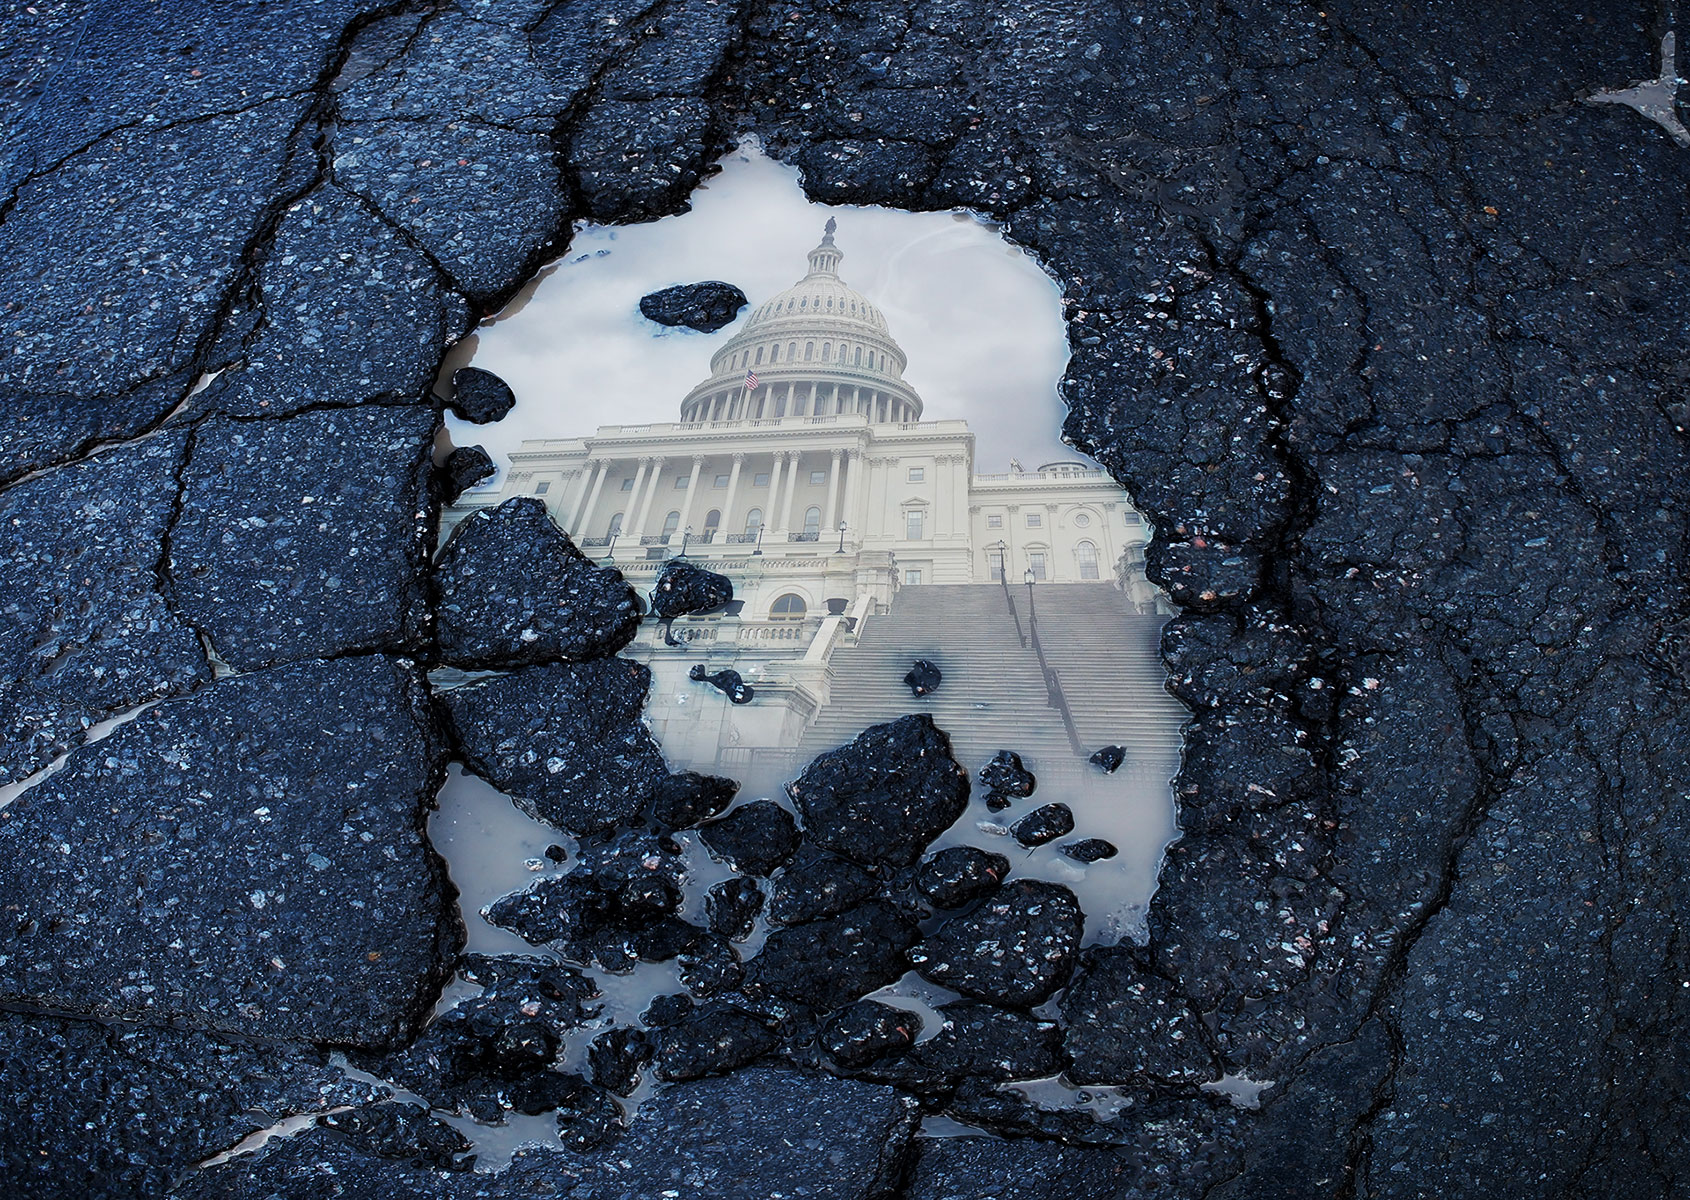 Peter Isackson, daily devils dictionary, US infrastructure news, Biden administration infrastructure plan, Democratic Party establishment, progressive politics US, Democrats US news, US politics news, Nancy Pelosi news, US military industrial complex